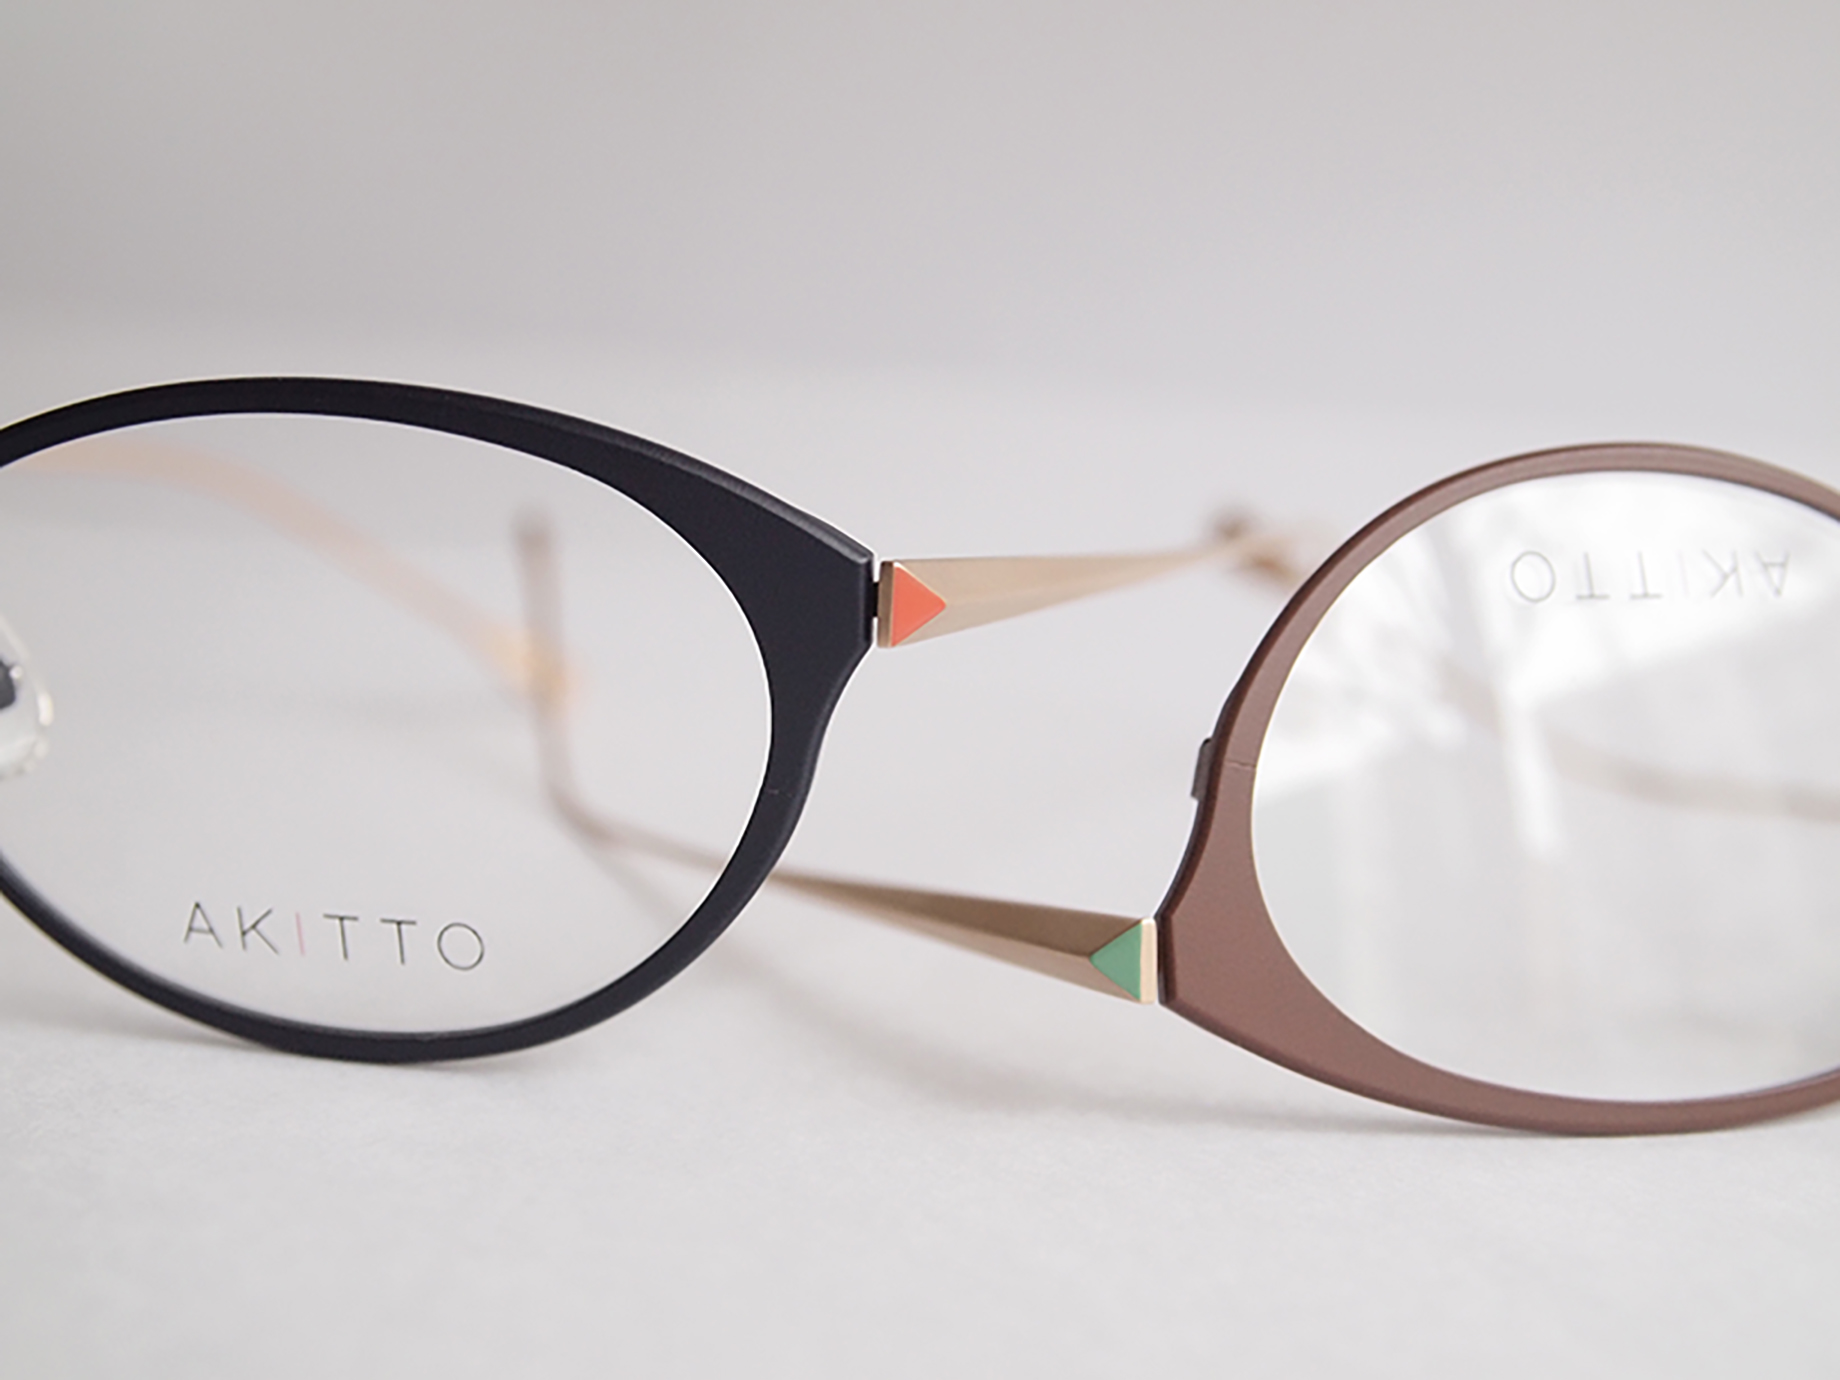 AKITTO 2020-1st tag size:52□18 material:titanium price:¥42,000(+tax)